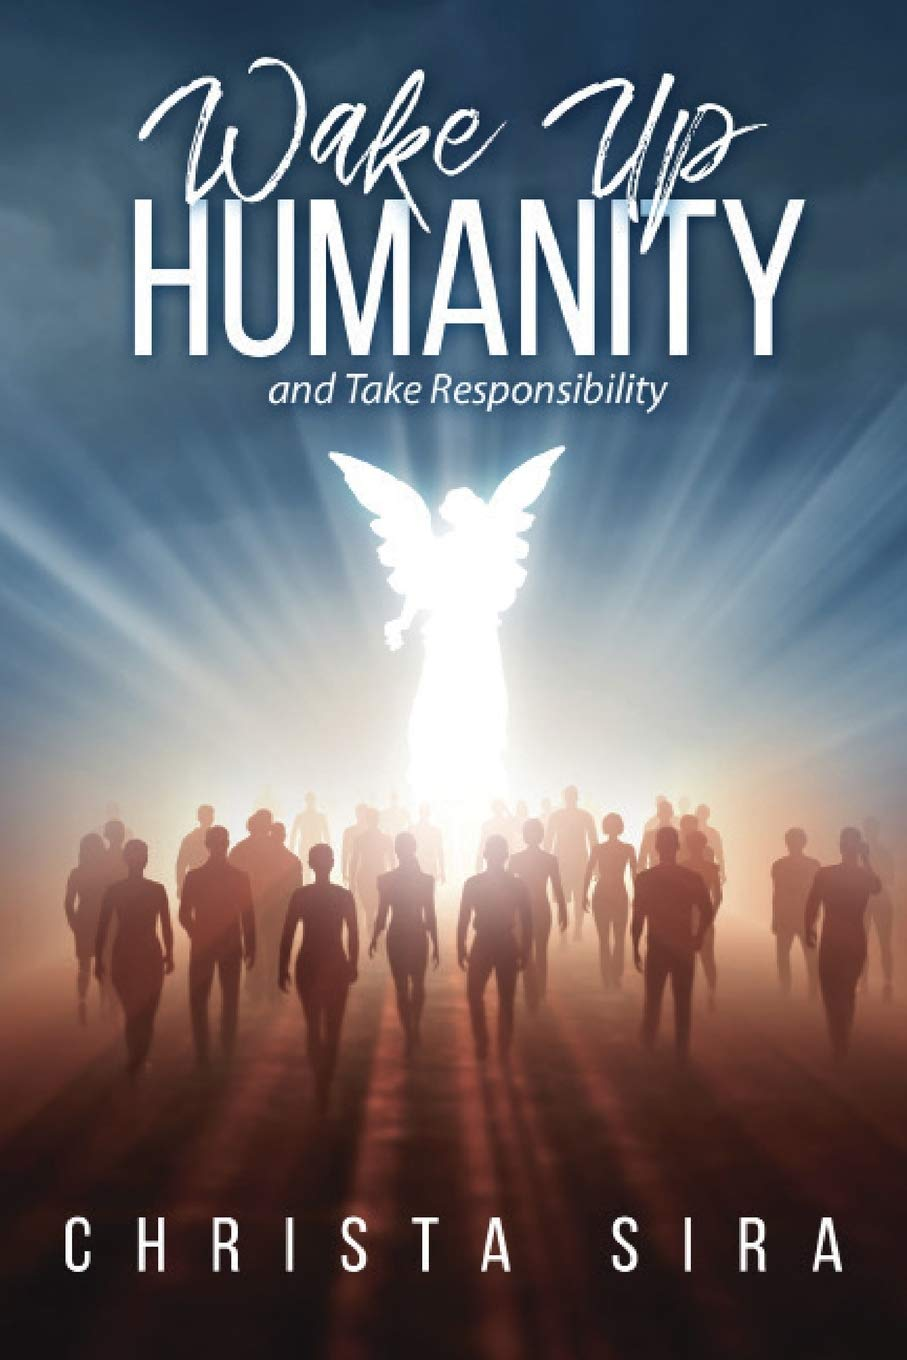 A Book that Awakens Humanity and Spirituality by Christa Sira